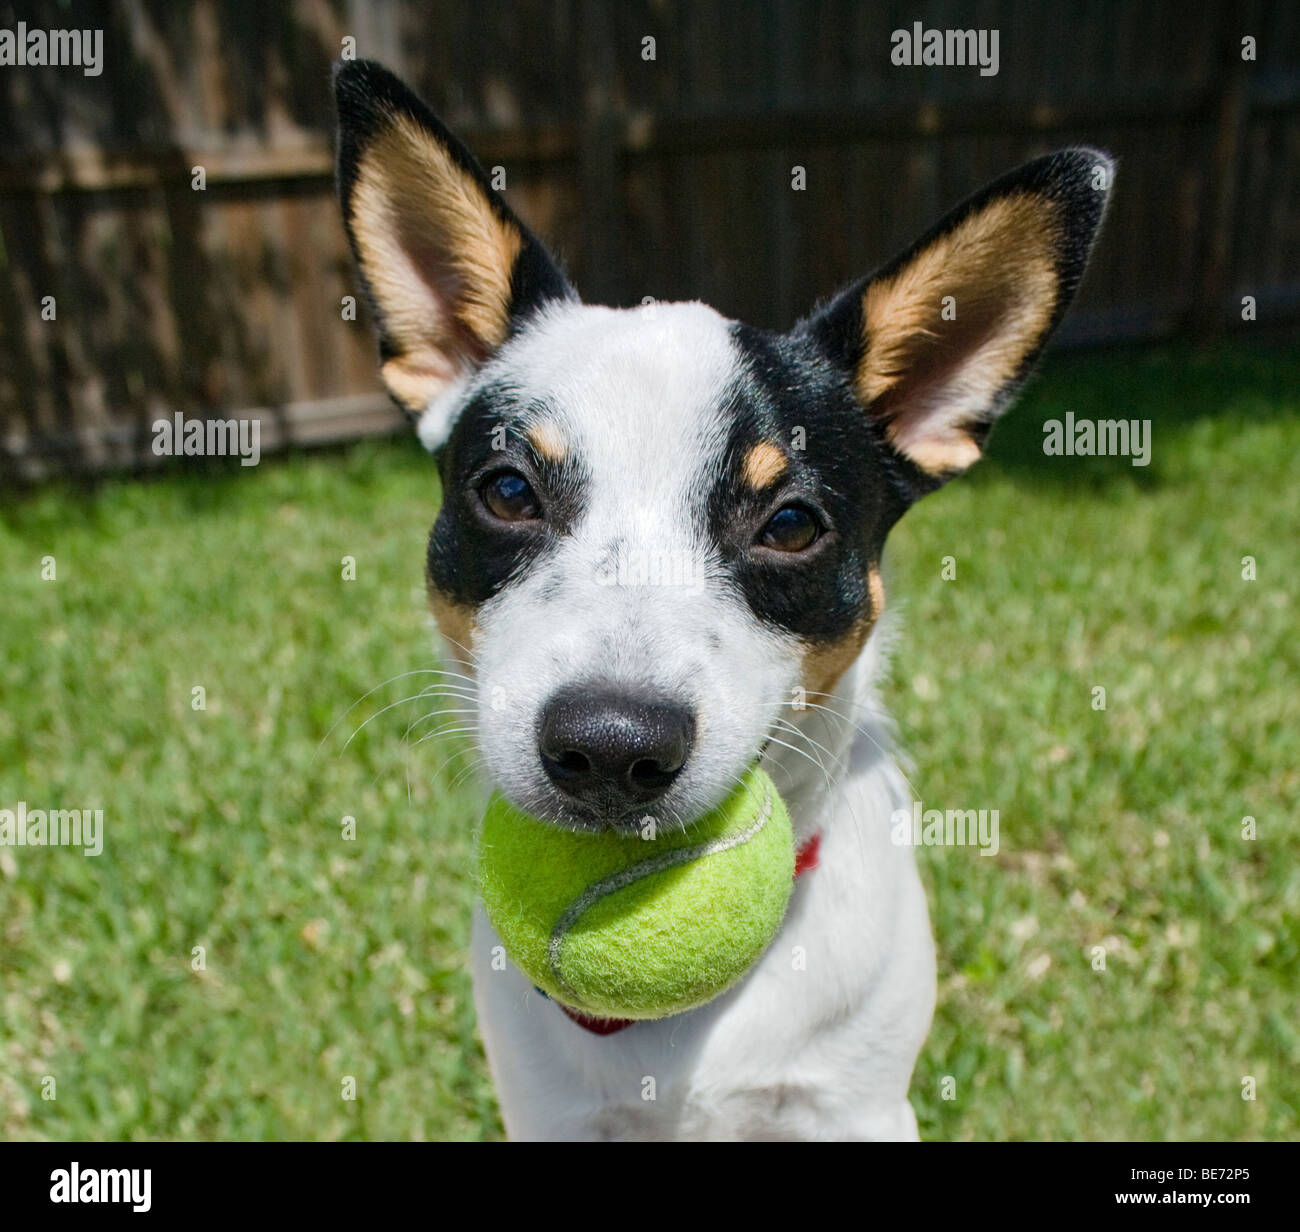 Rat Terrier puppy playing with tennis ball in a backyard - Stock Image